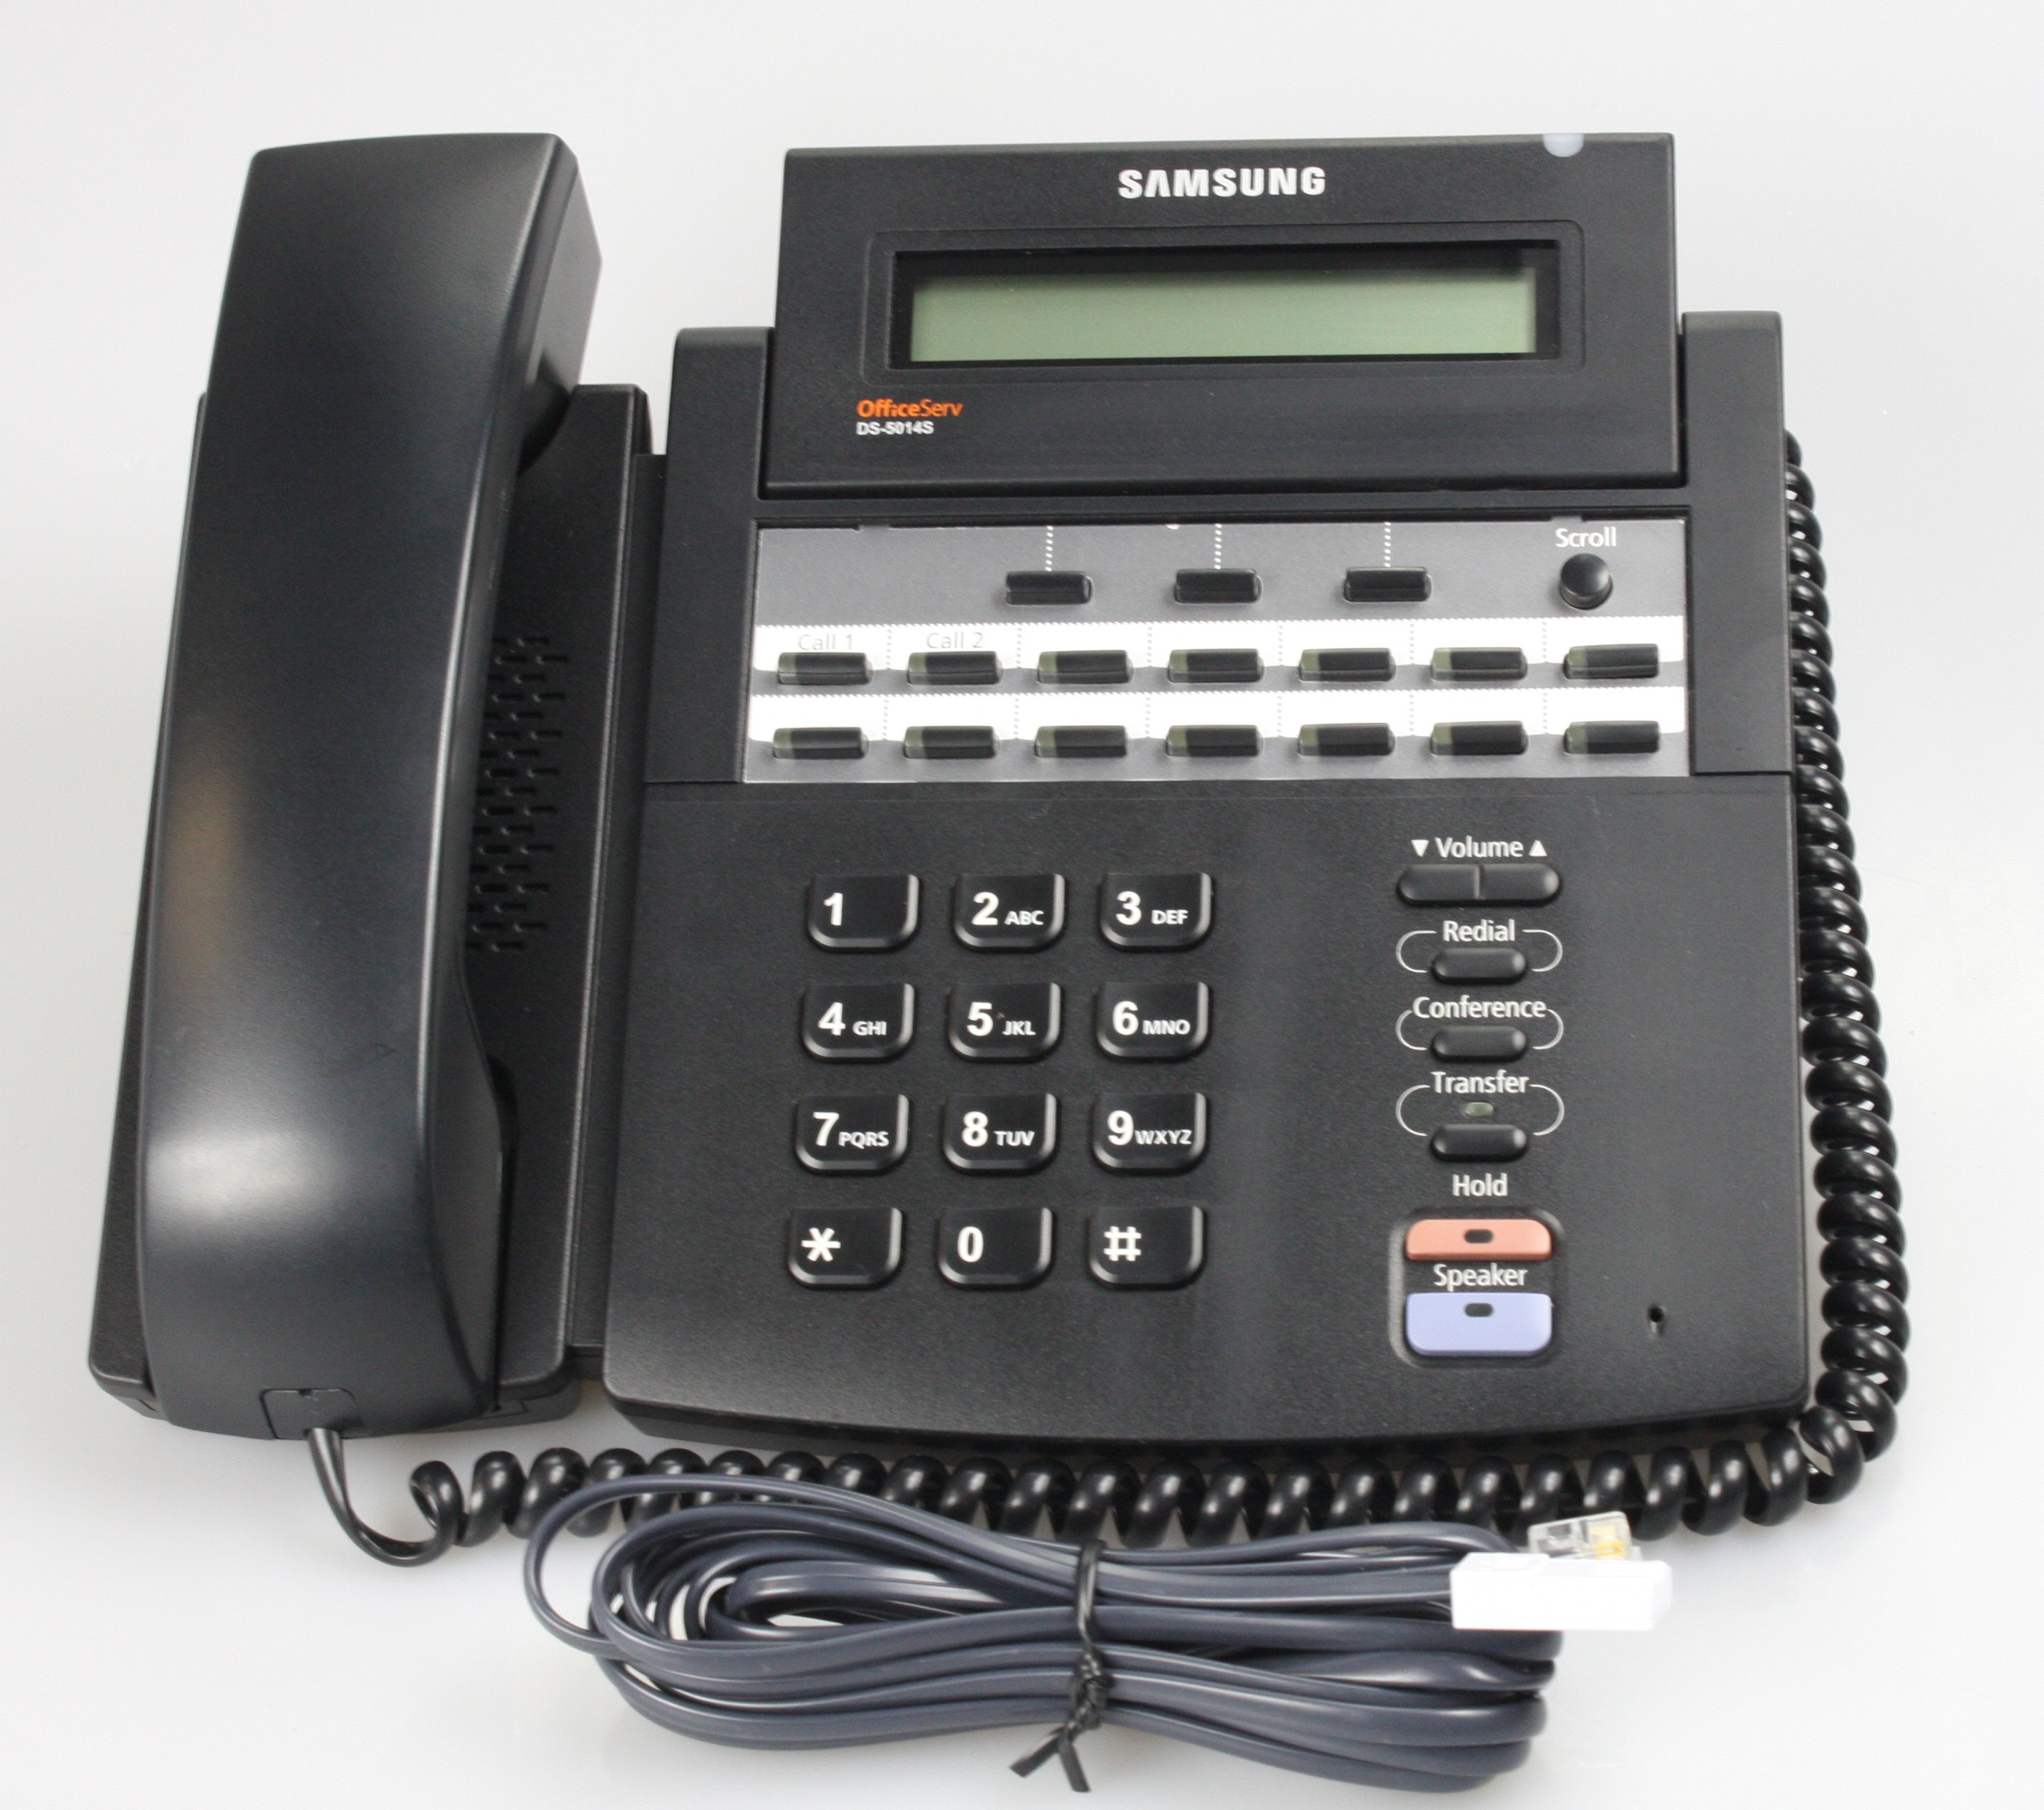 Samsung DS-5014S 14 Button Display Telephone Black